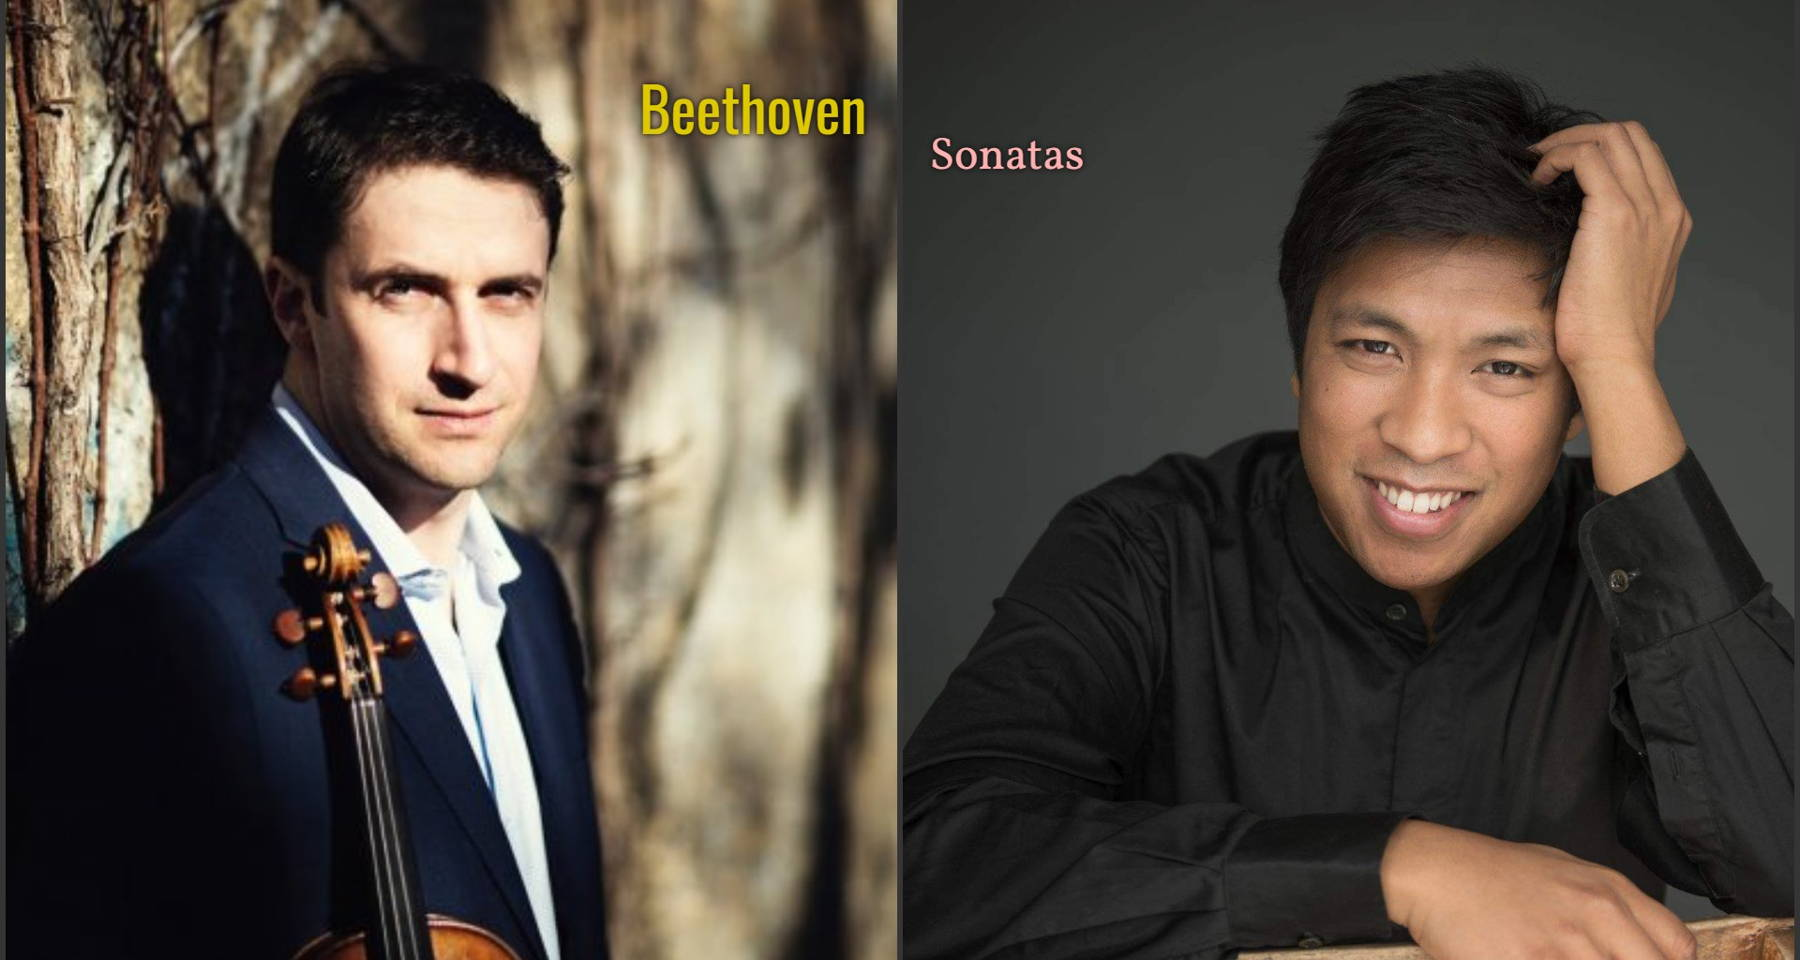 Yannick and Friends present: Beethoven Celebration with violinist Noah Bendix-Balgley